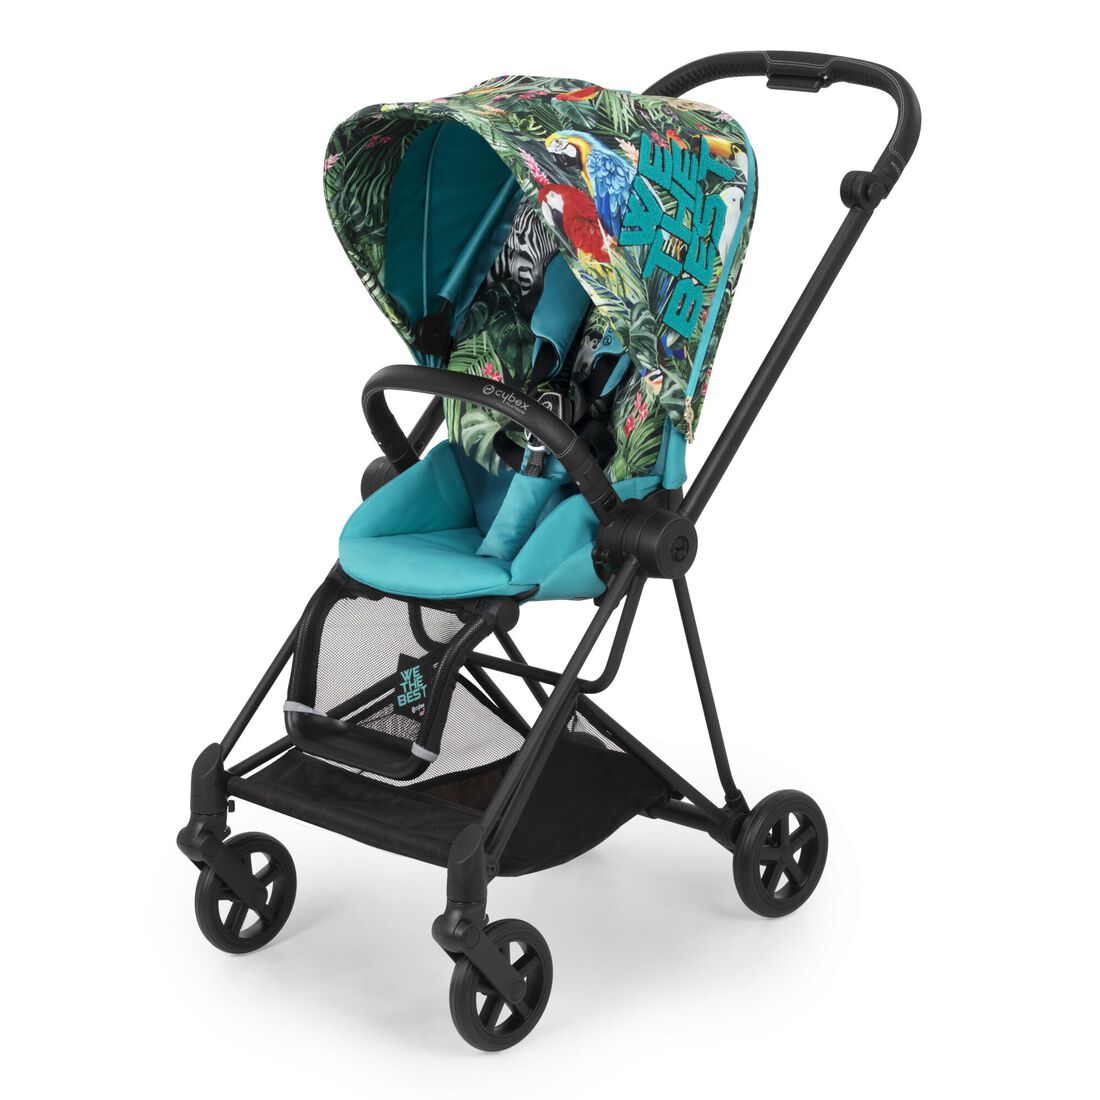 CYBEX Mios Sitzpaket - We The Best in We The Best large